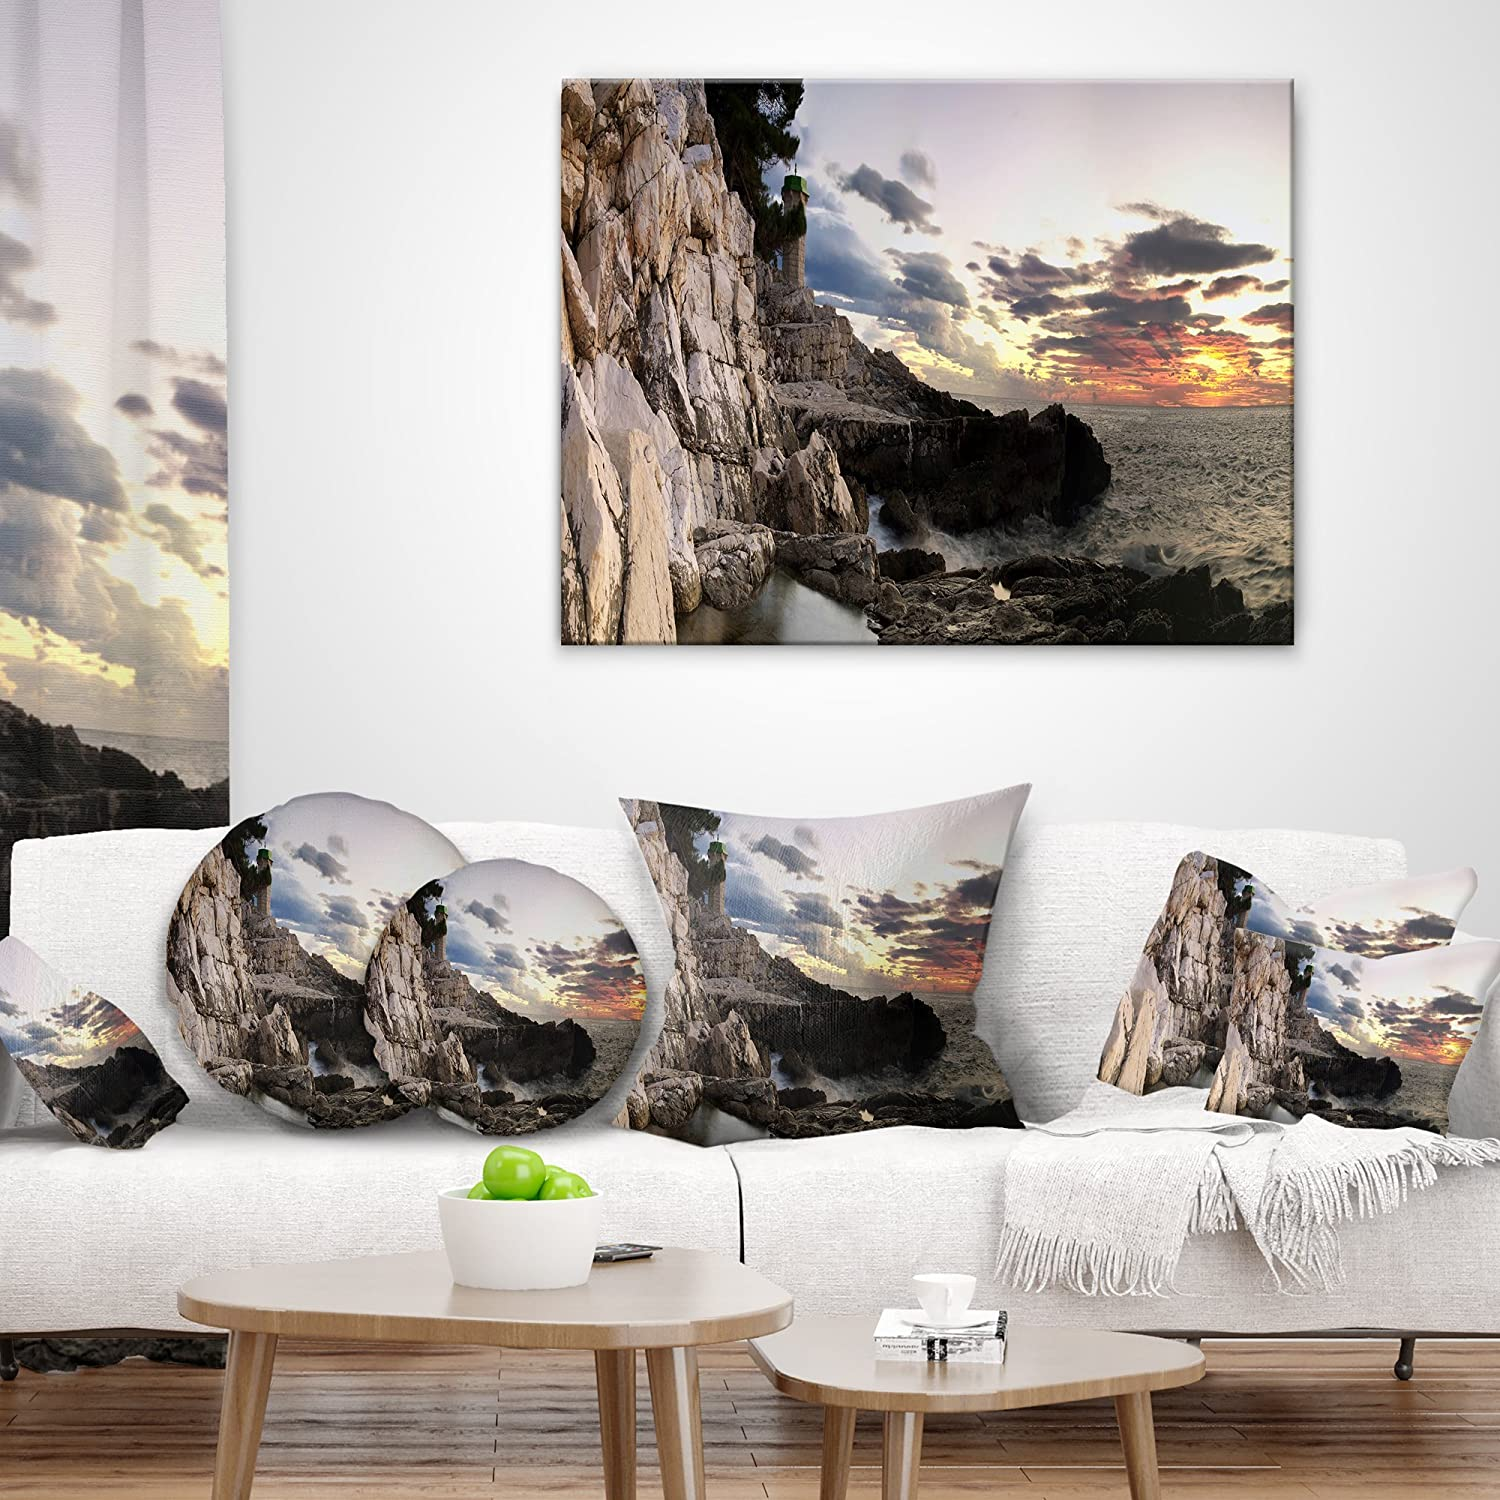 Cushion Cover Printed On Both Side Sofa Designart Cu6434 20 20 C Adriatic Sunset Landscape Photography Throw Cushion Pillow Cover For Living Room 20 Round Pillow Insert Decorative Pillows Inserts Covers Home Kitchen